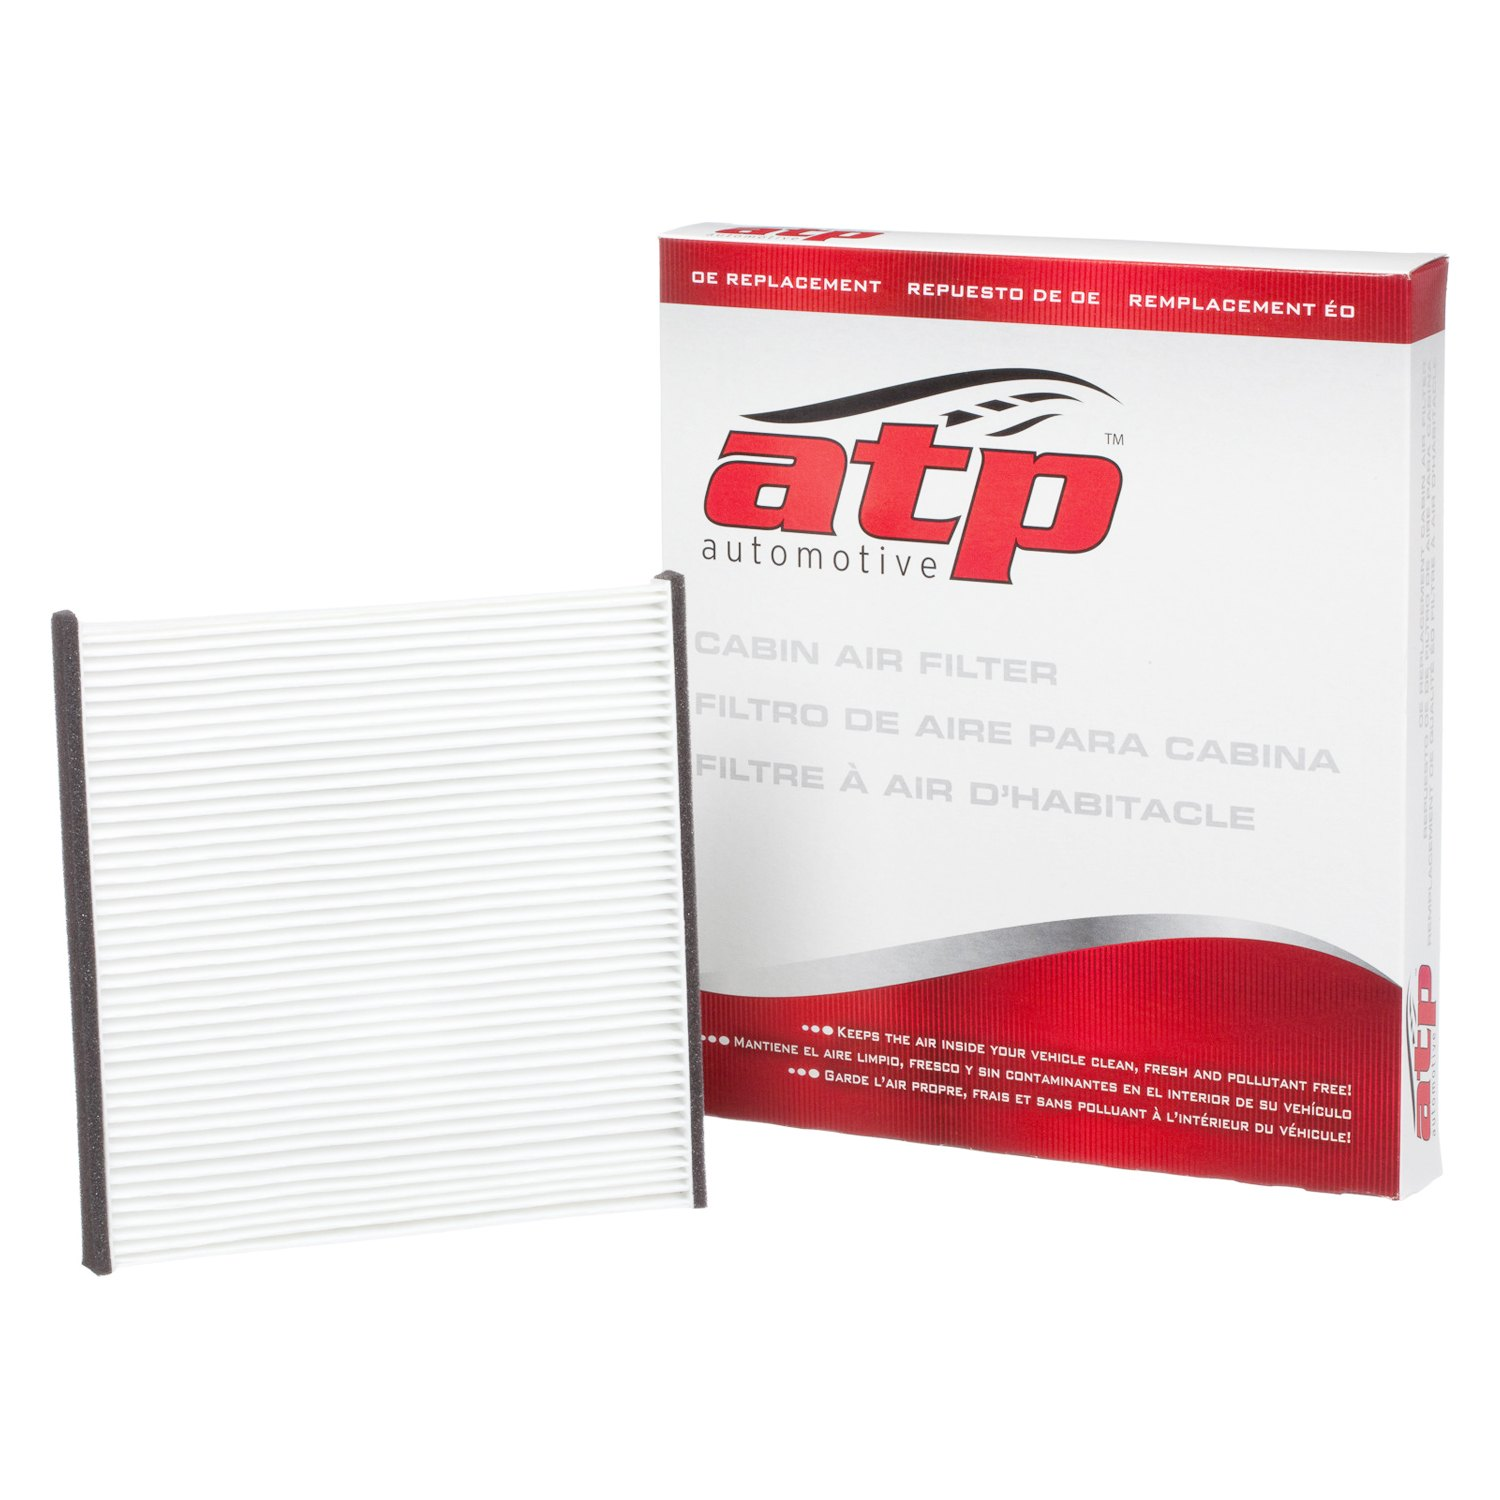 cf-44-2 Terrific toyota Camry 2006 Air Filter Replacement Cars Trend